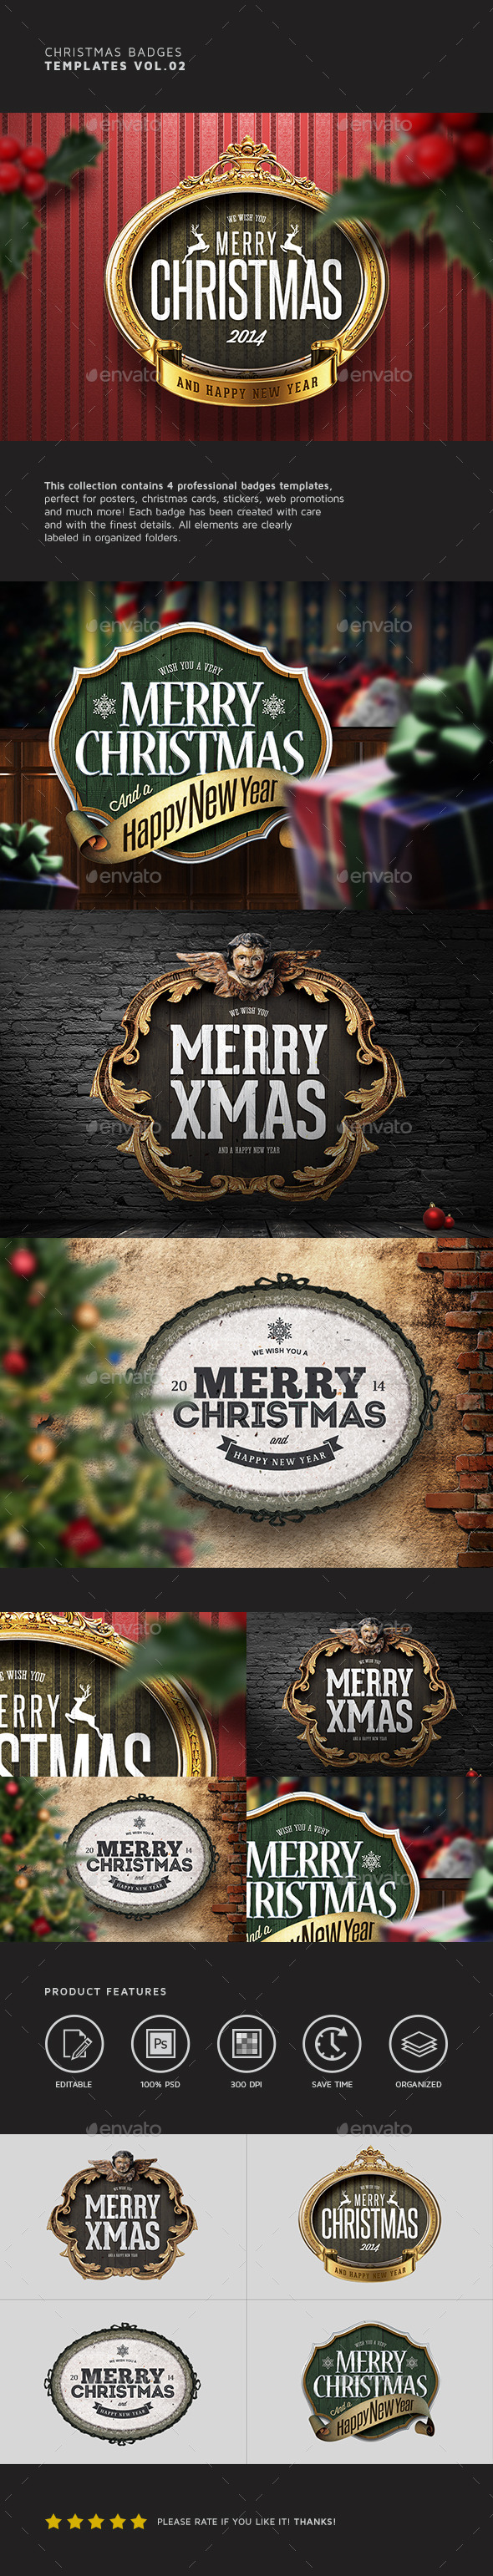 Christmas Badges Vol.02 - Badges & Stickers Web Elements